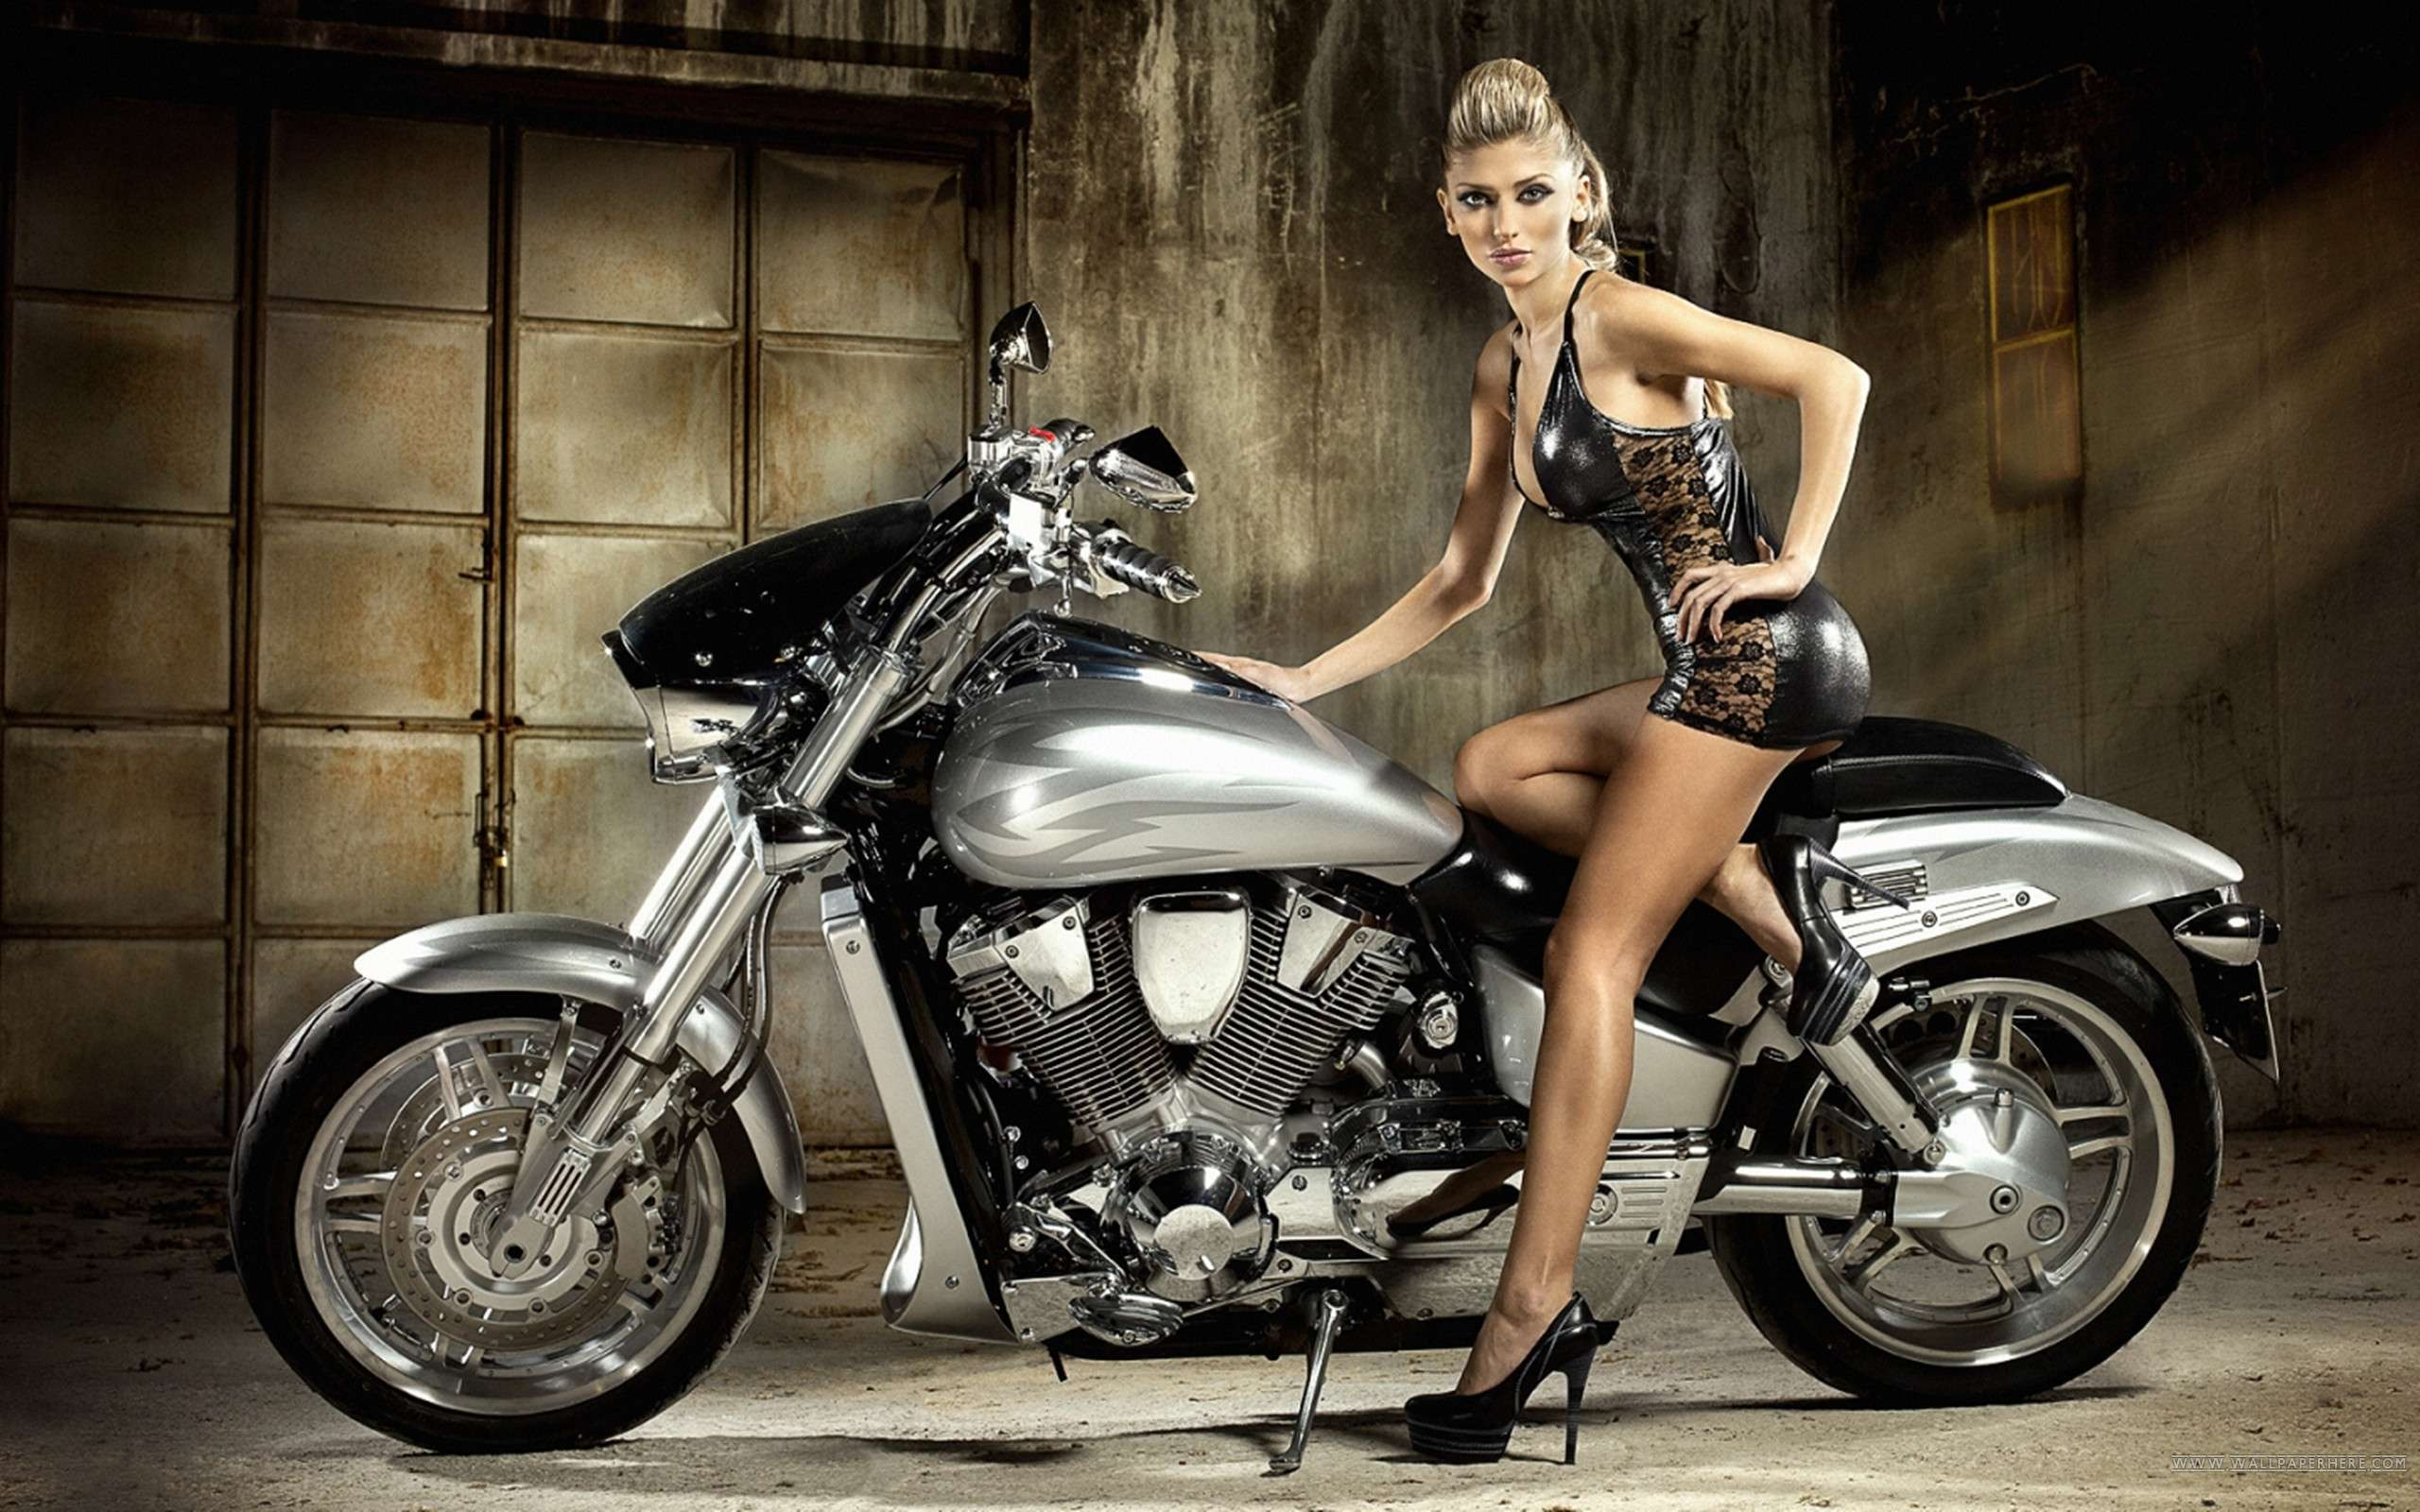 Hot girls motorcycle #12